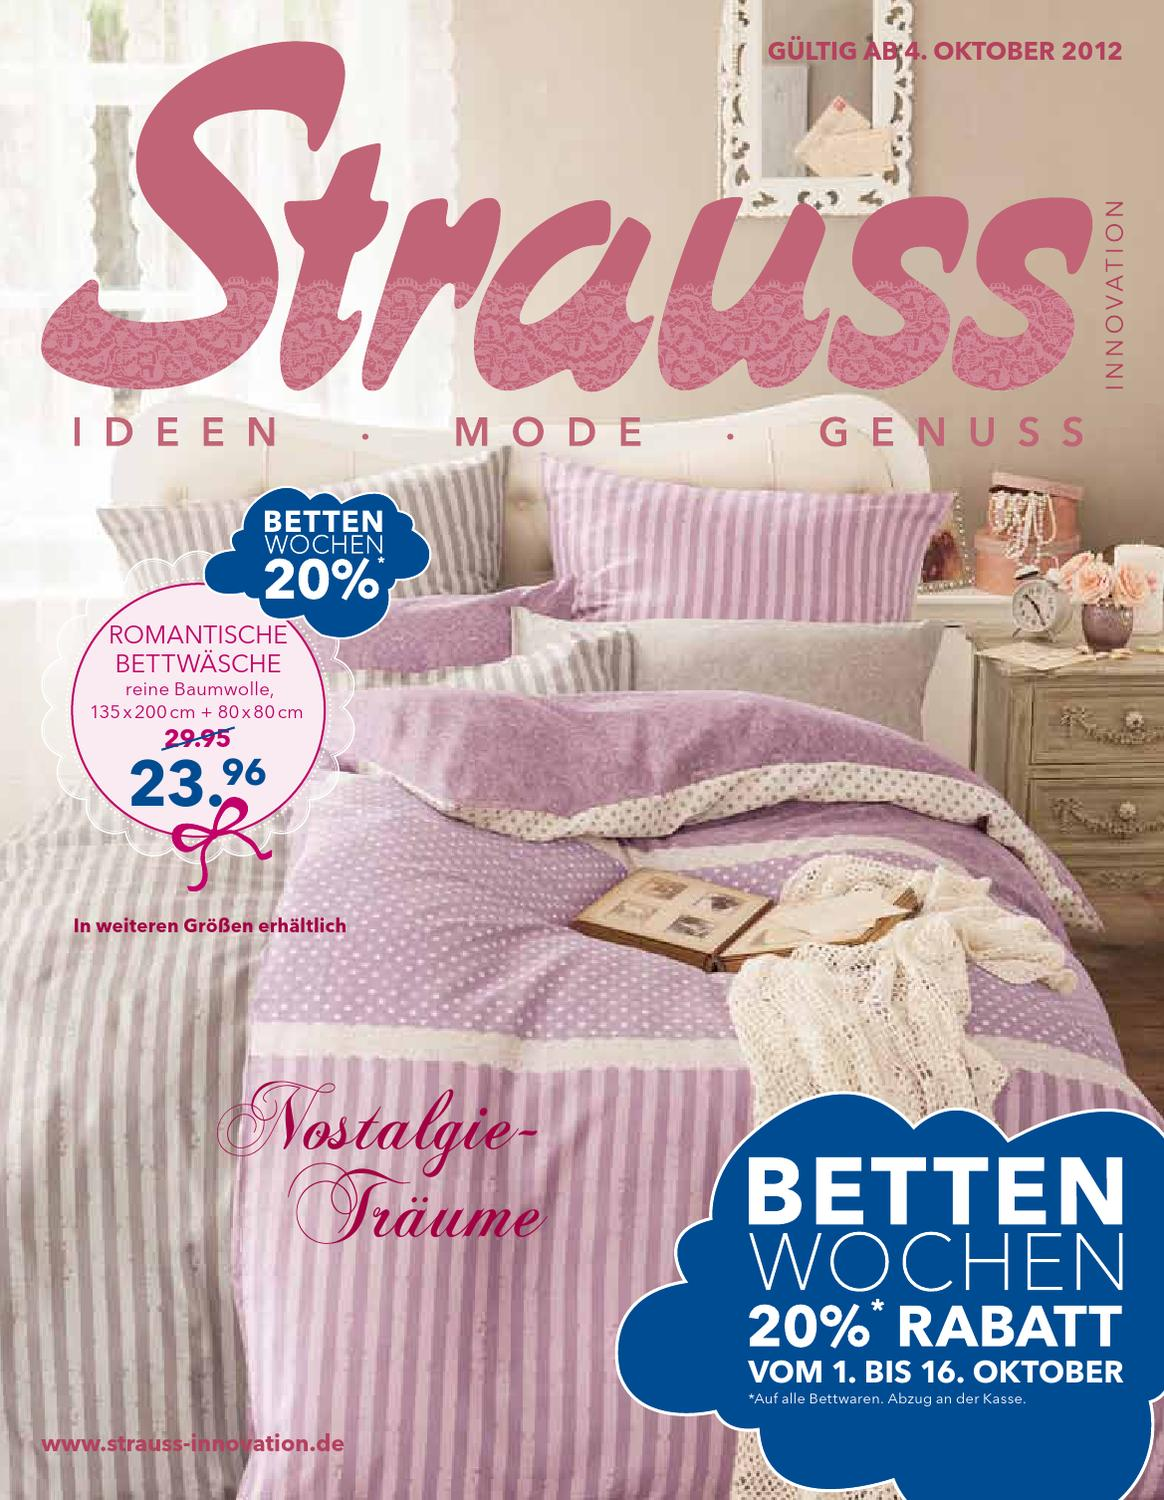 Bettdecken Strauss Innovation Nostalgie Träume By Strauss Innovation Gmbh Co Kg Issuu